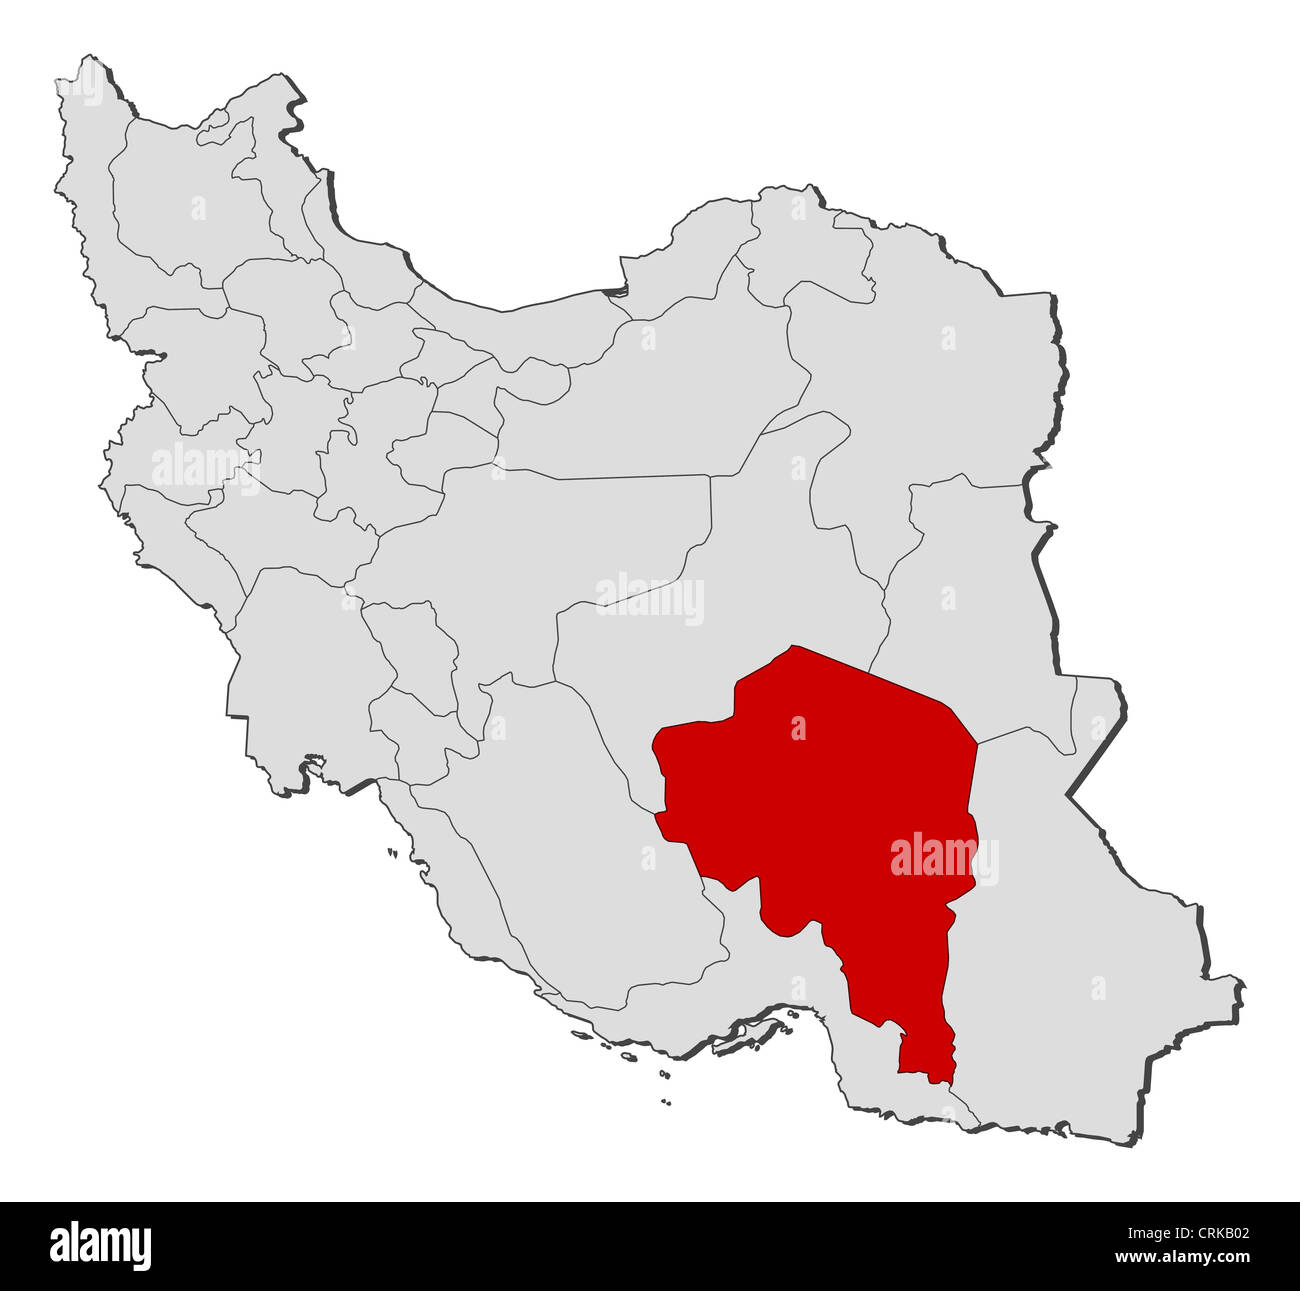 Political map of Iran with the several provinces where Kerman is